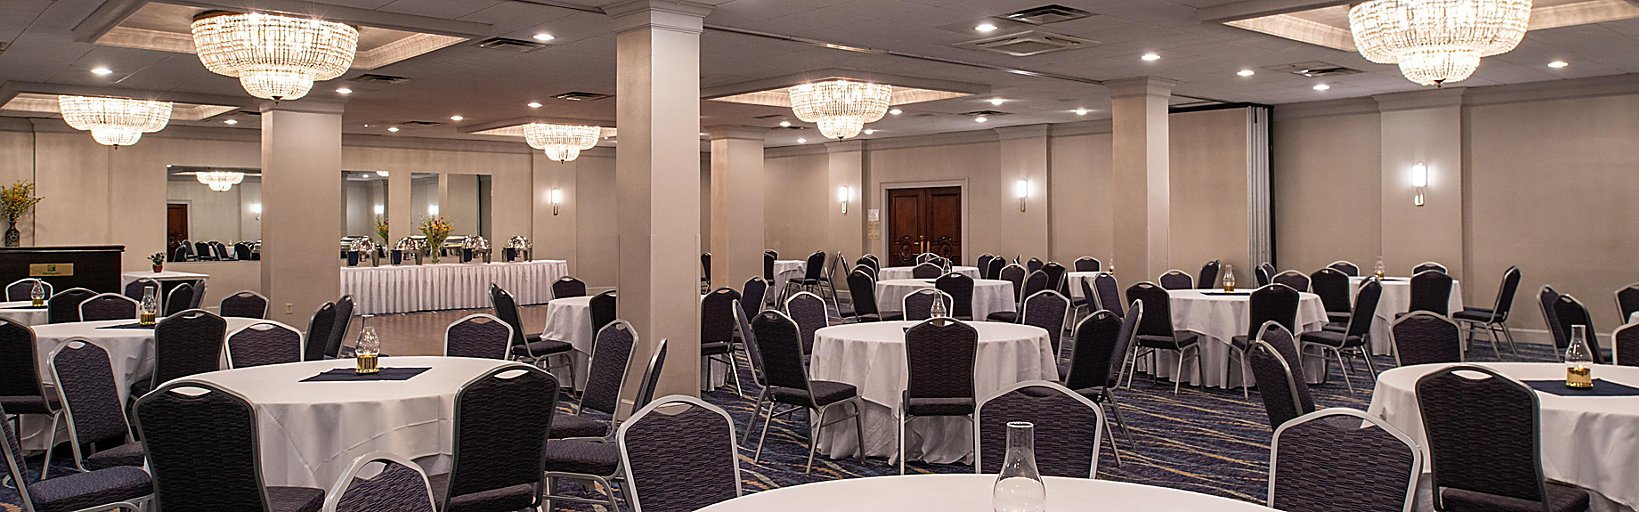 Concord Wedding Center.Holiday Inn Concord Downtown Hotel Groups Meeting Rooms Available